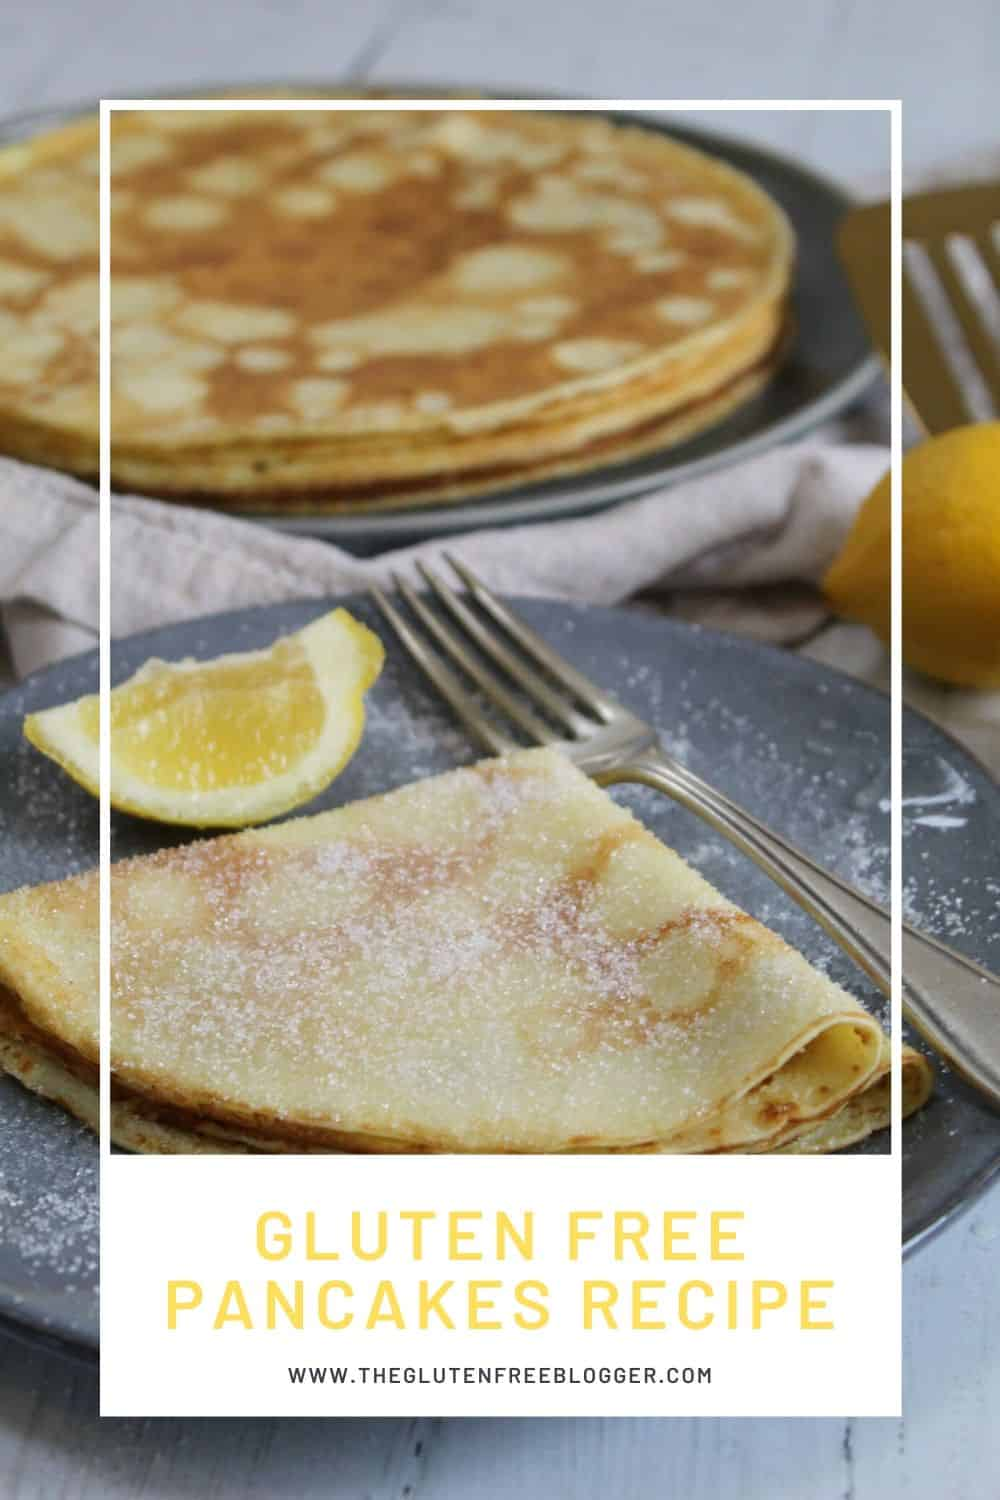 gluten free pancakes recipe crepe recipe without xanthan gum coeliac friendly (2)